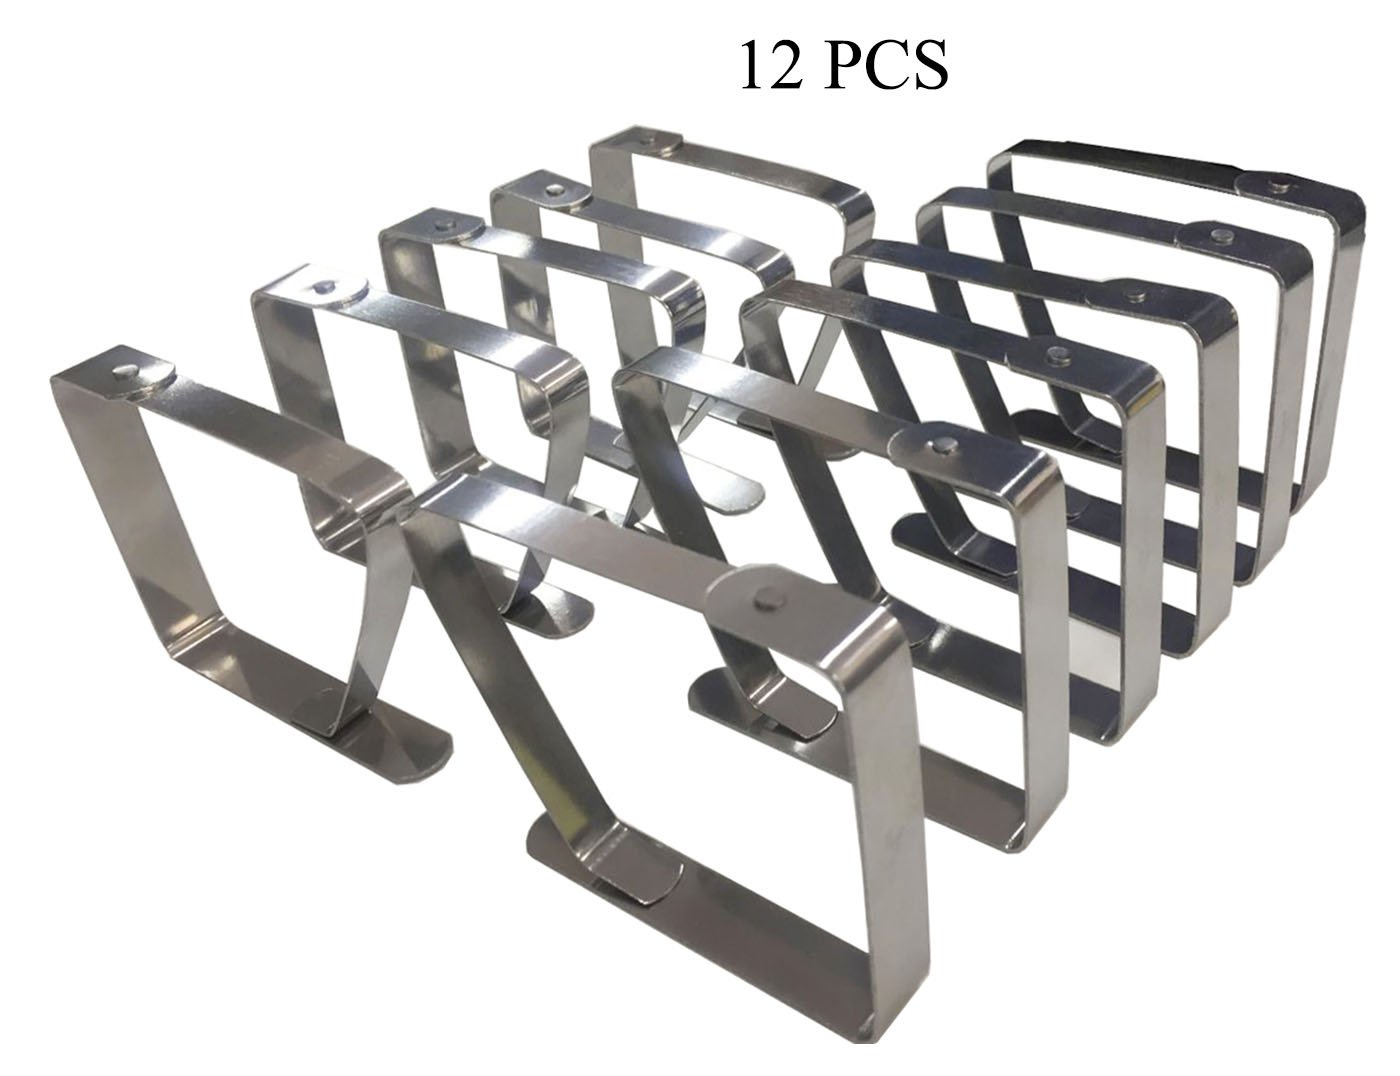 levylisa Pack of 12 Stainless Steel Tablecloth Clips for 2.05 inch Thick Tables Outdoor Picnic Metal Tablecloth Clamps,Table Cover Clips,Drawing Board Clips,Wedding Picnic Indoor Outdoor by levylisa